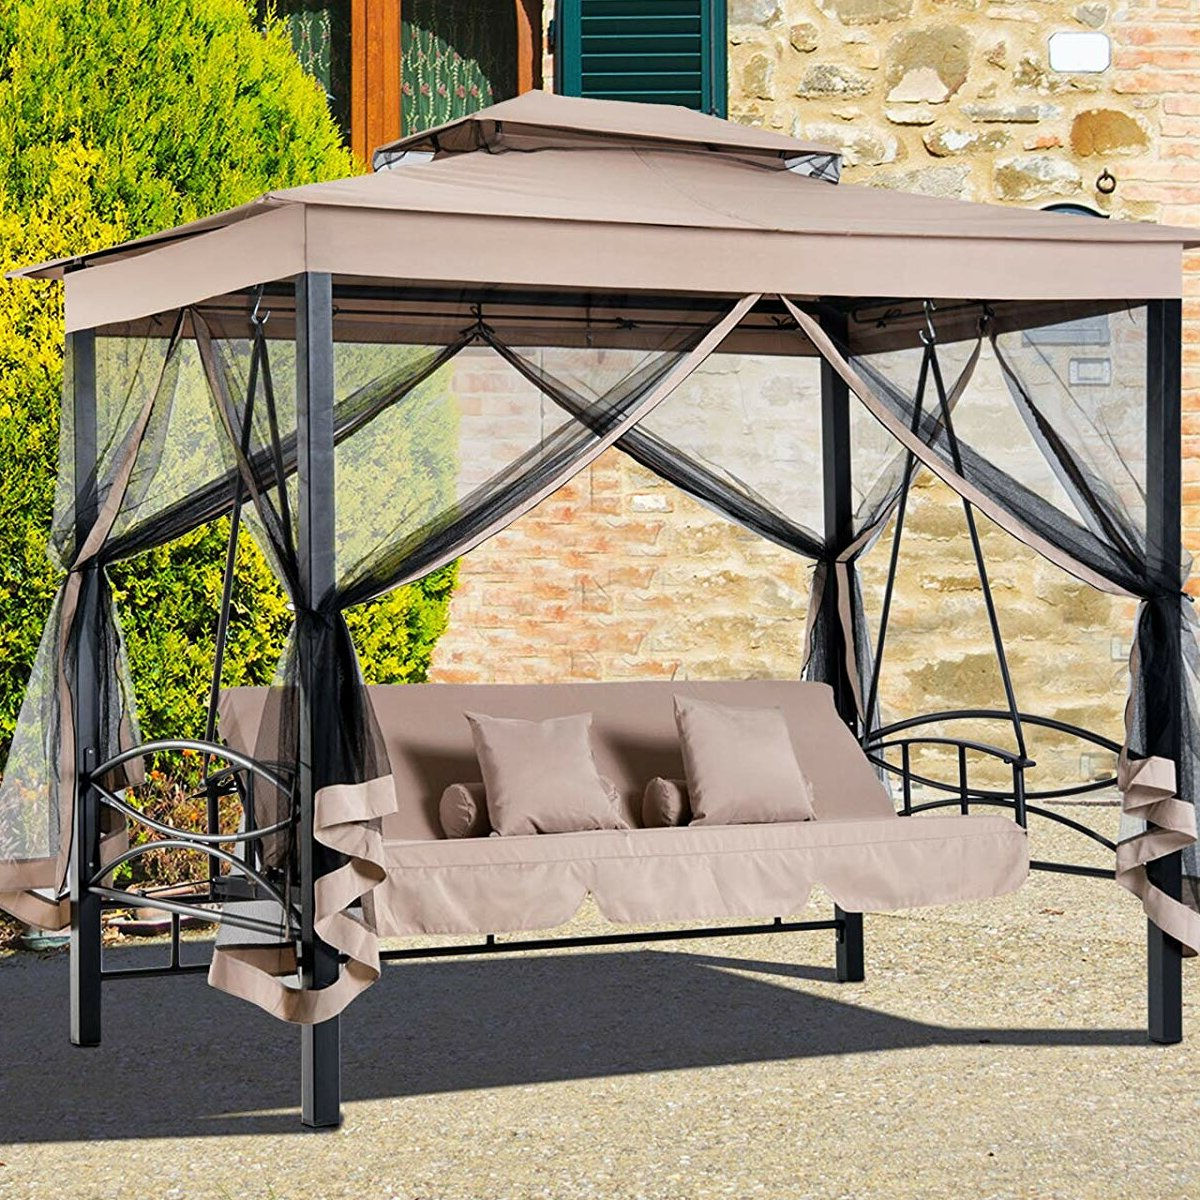 Kenyatta Outdoor Patio Daybed Canopy Gazebo Swing With Mesh Walls Within Best And Newest Canopy Patio Porch Swings With Pillows And Cup Holders (View 5 of 25)